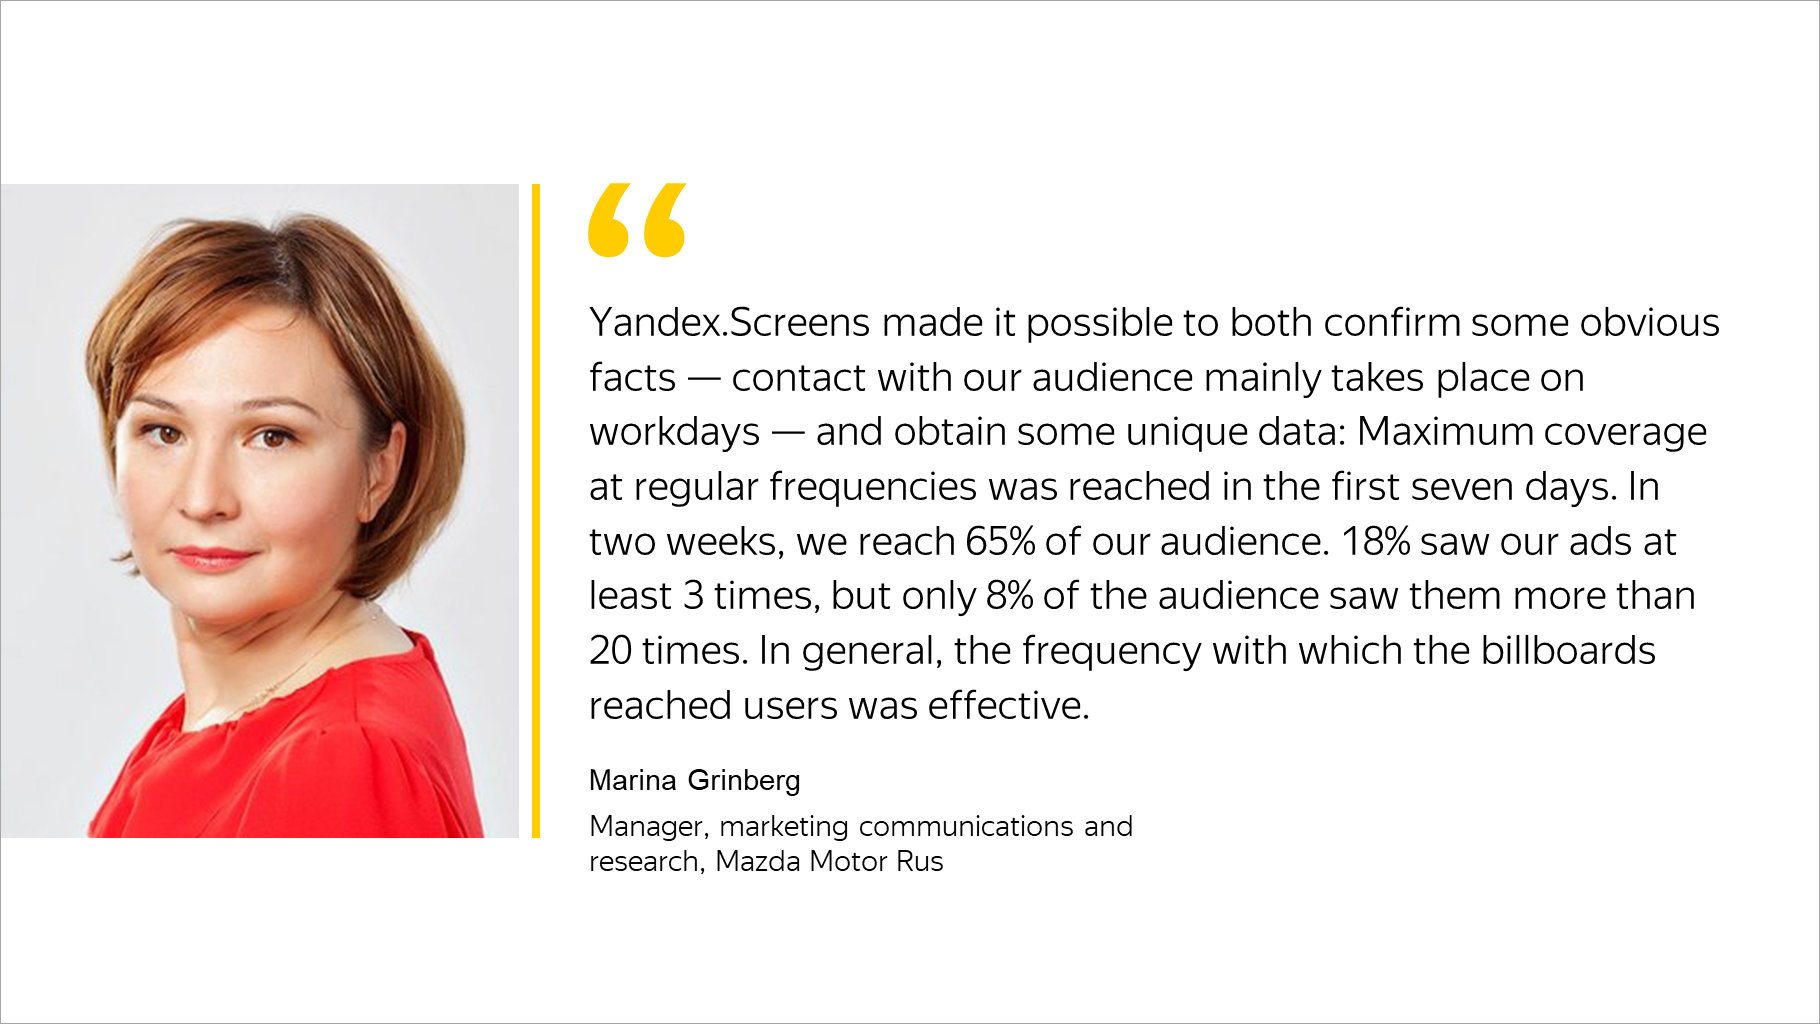 Yandex.Screens made it possible to both confirm some obvious facts — contact with our audience mainly takes place on workdays — and obtain some unique data: Maximum coverage at regular frequencies was reached in the first seven days.